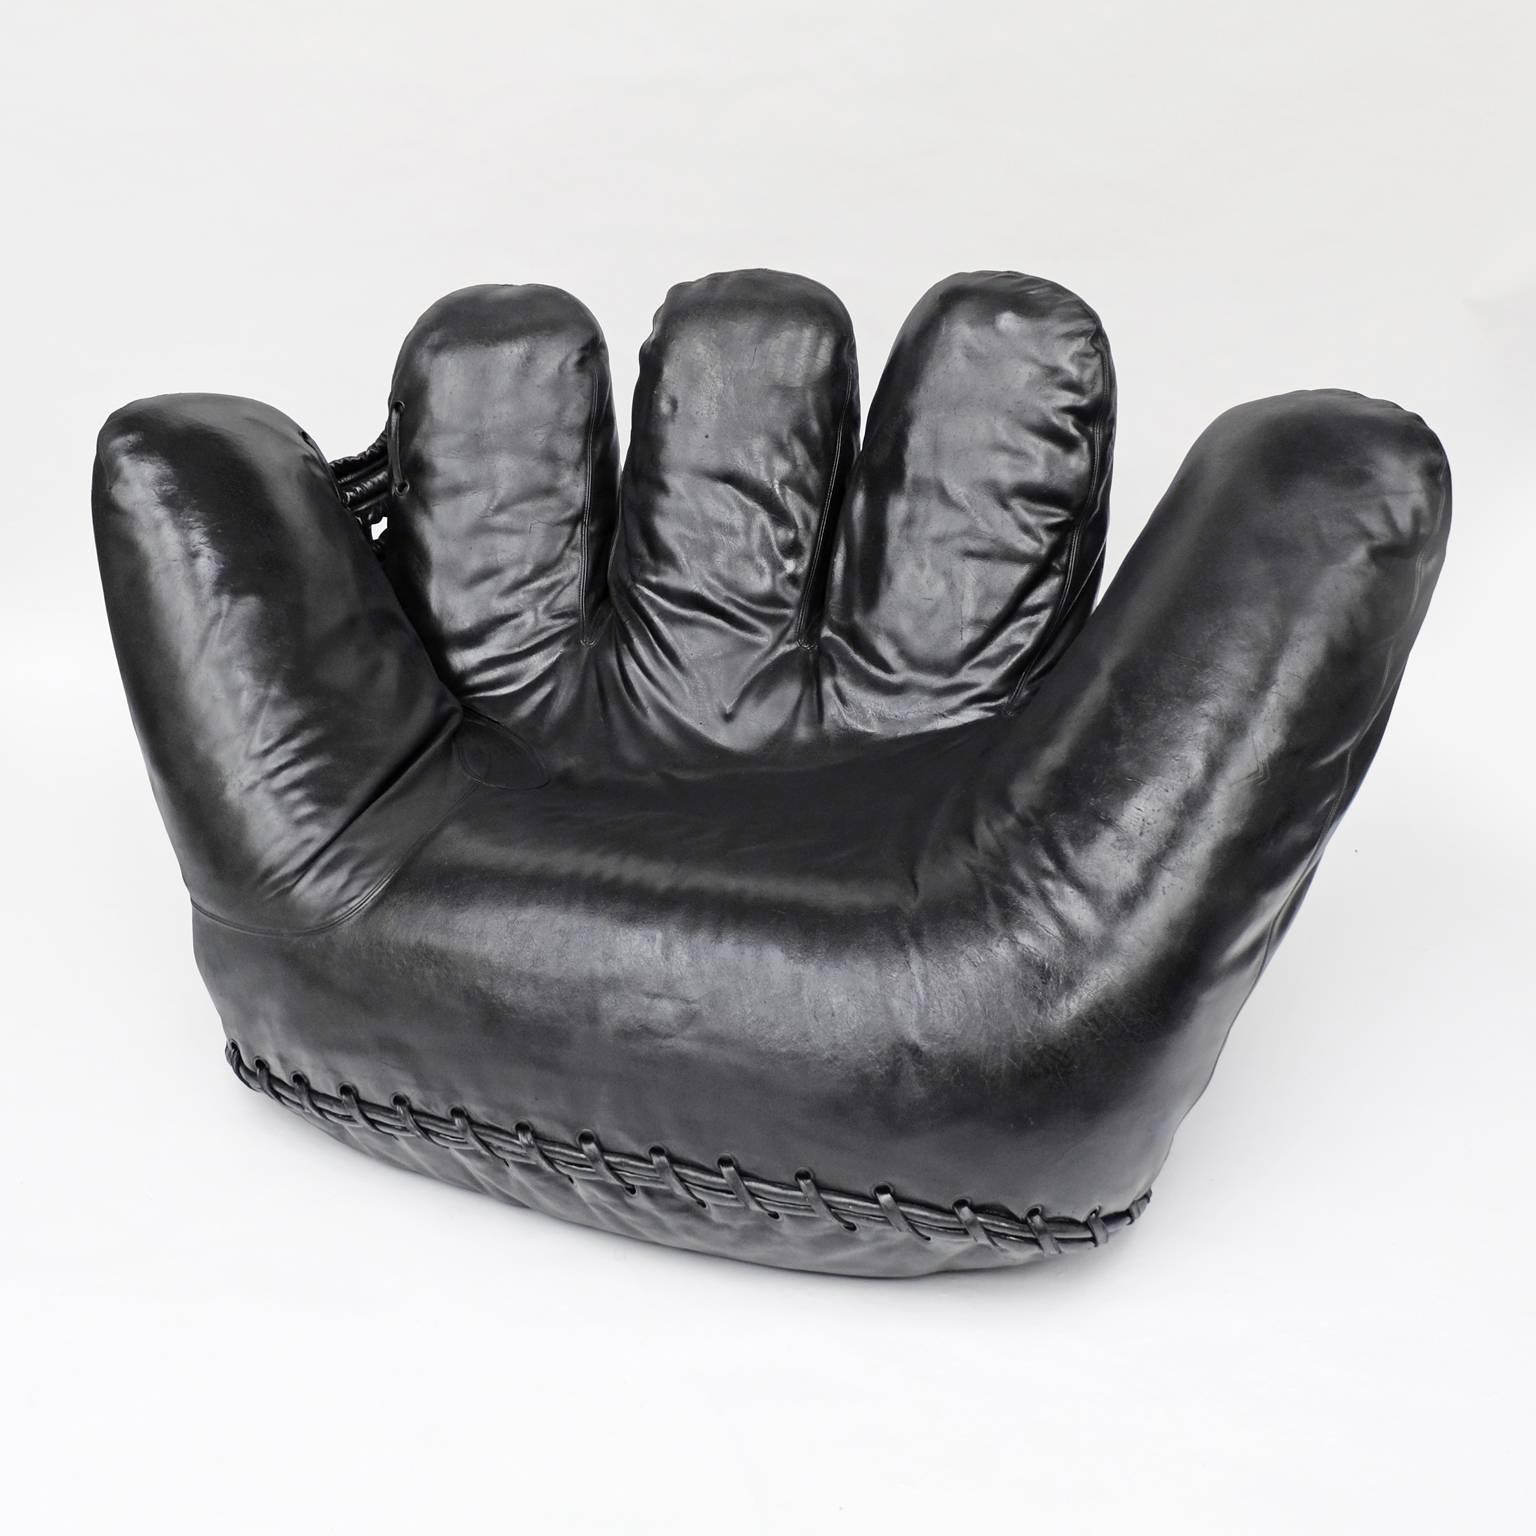 1970s Black Leather Poltronova Joe Baseball Glove Chair Pop Art For Sale At  1stdibs